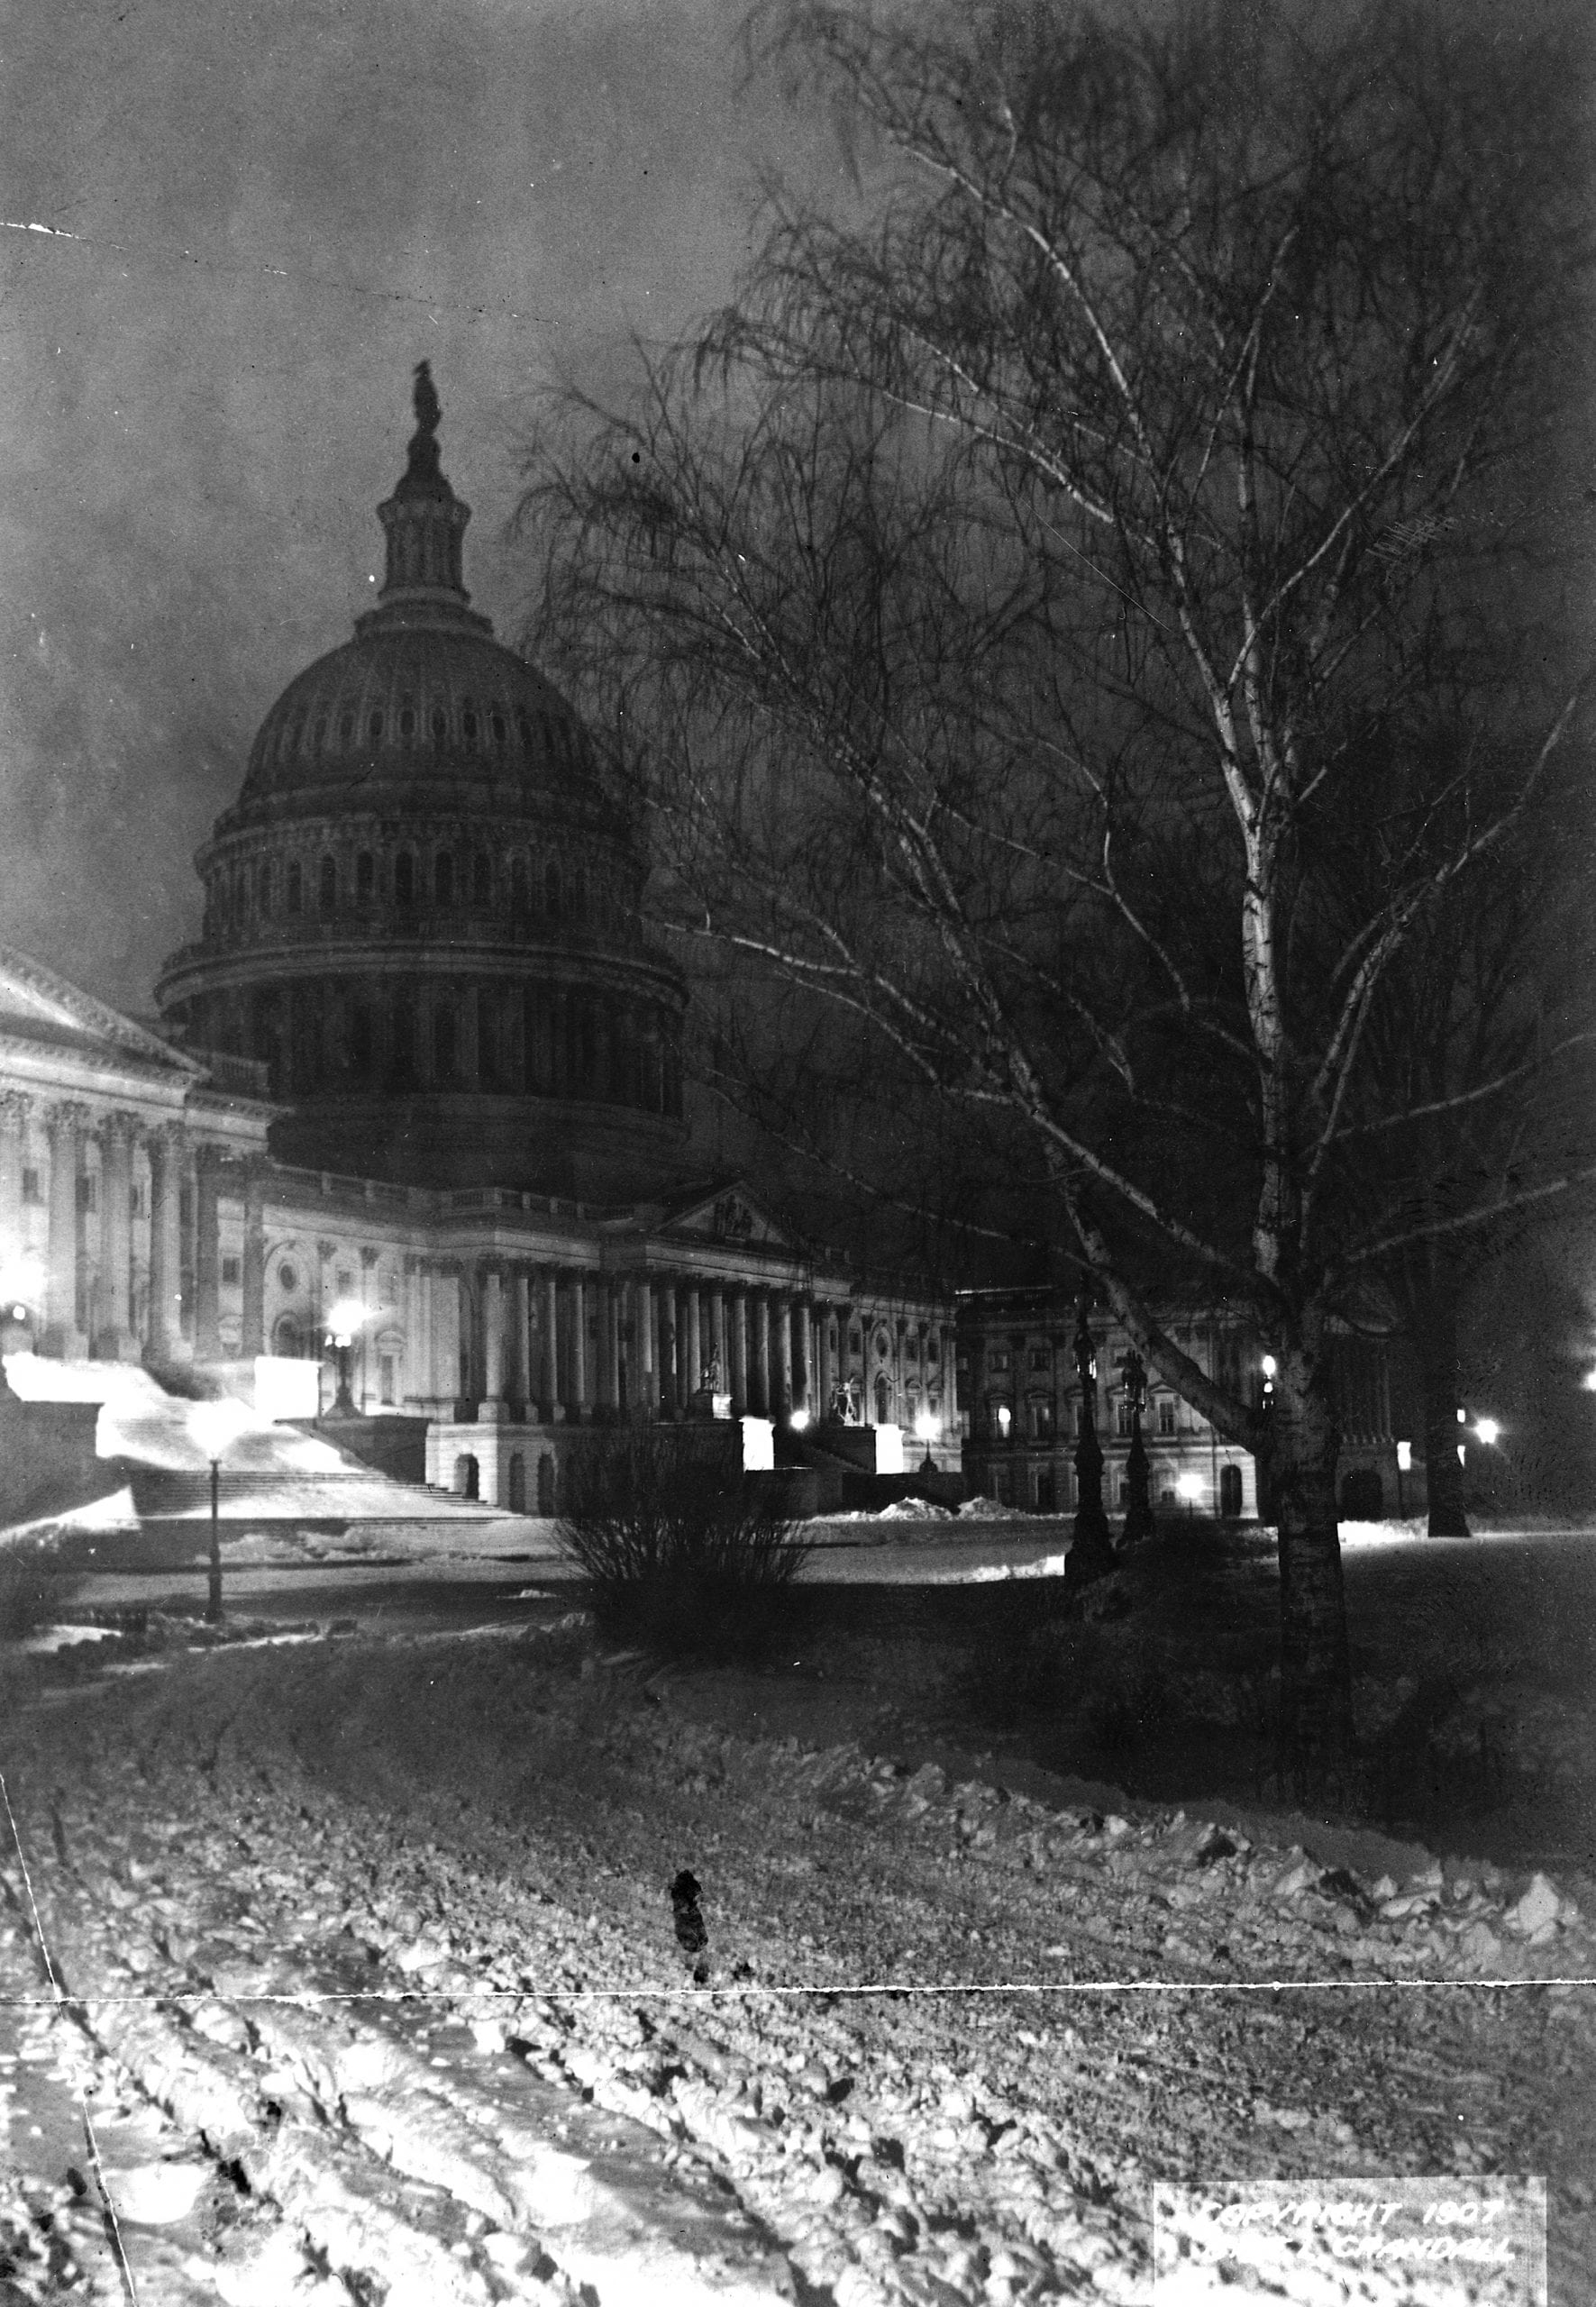 view of the Capitol at night in the snow (1907)